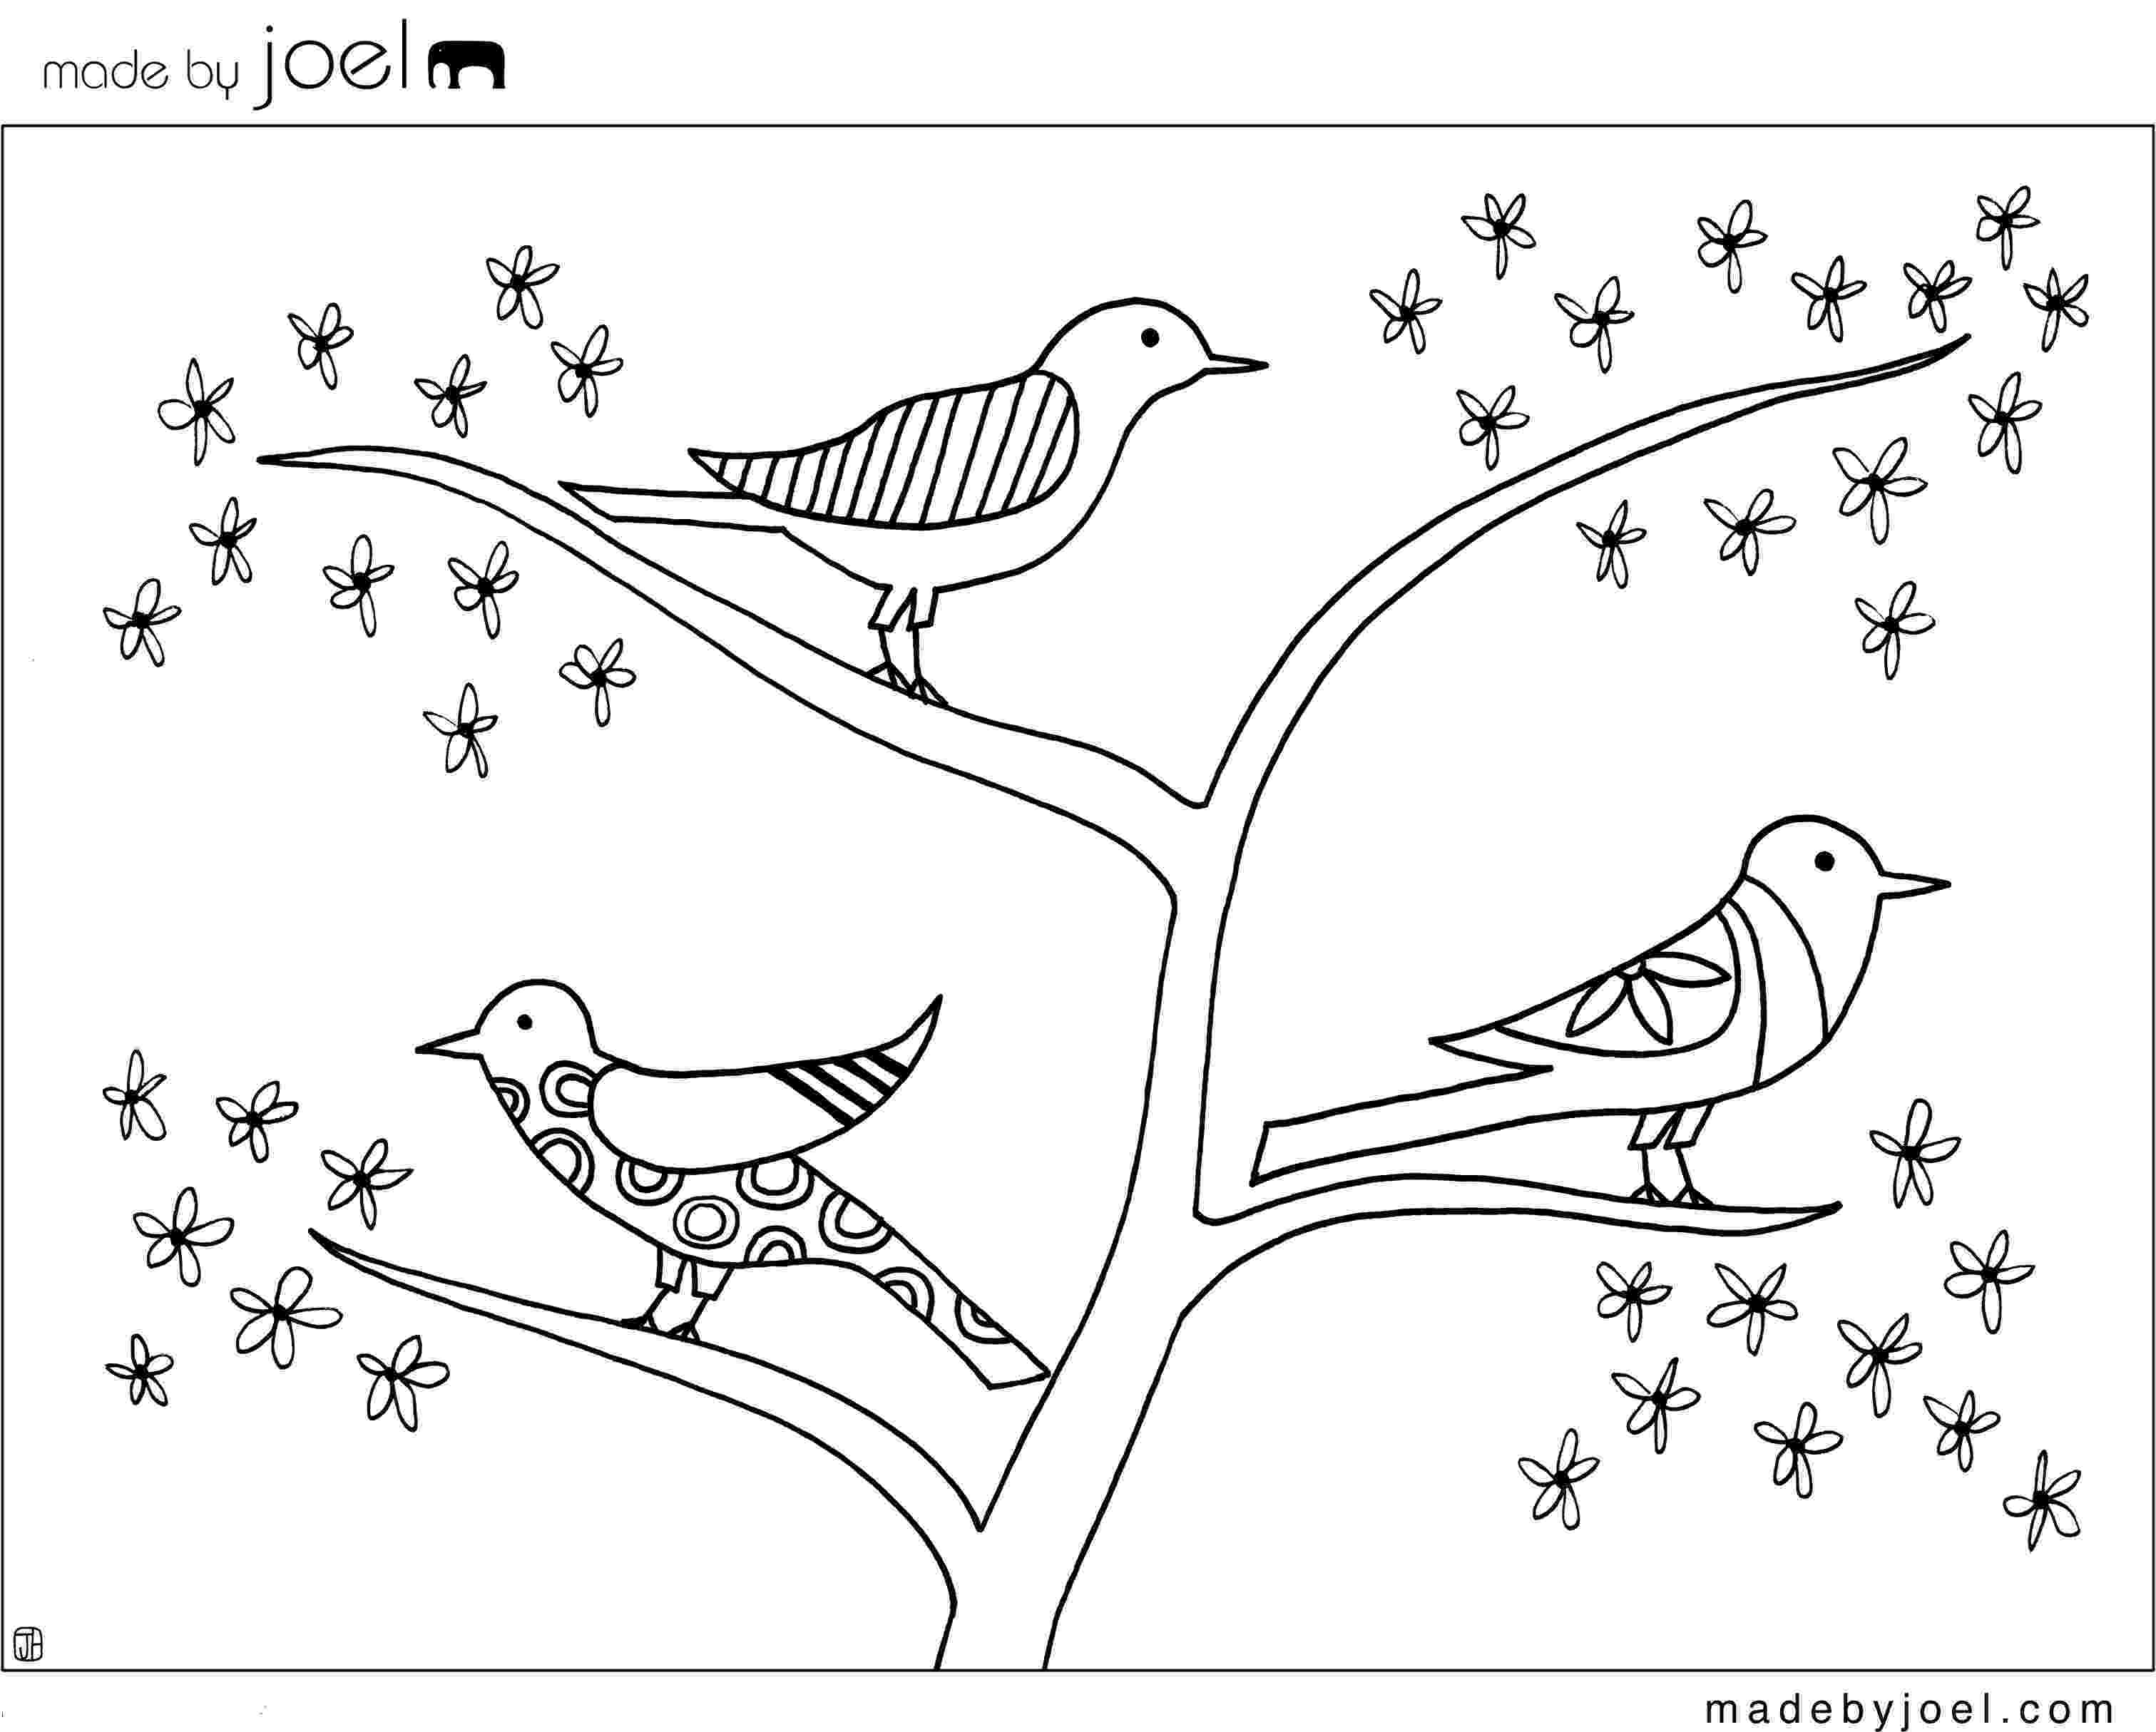 images of birds for colouring lion guard coloring pages for kids animal coloring pages for birds images colouring of